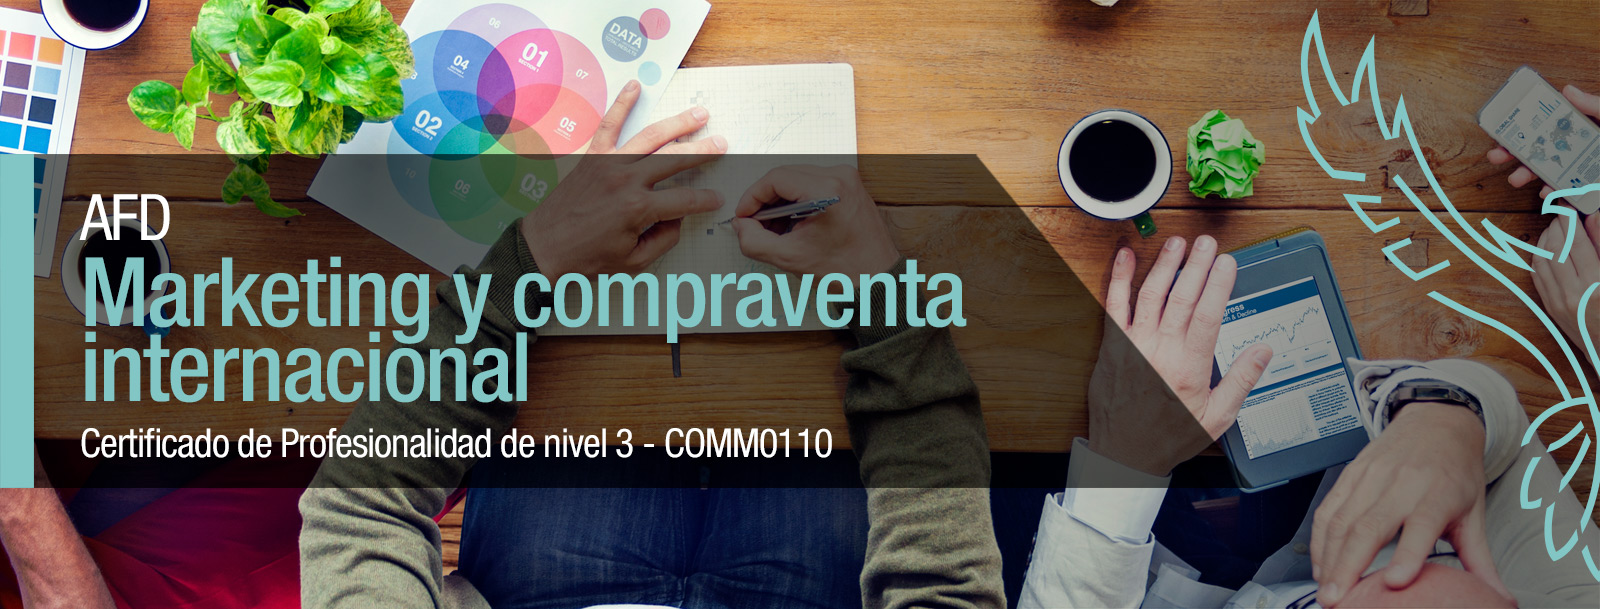 Curso de marketing y compraventa internacional